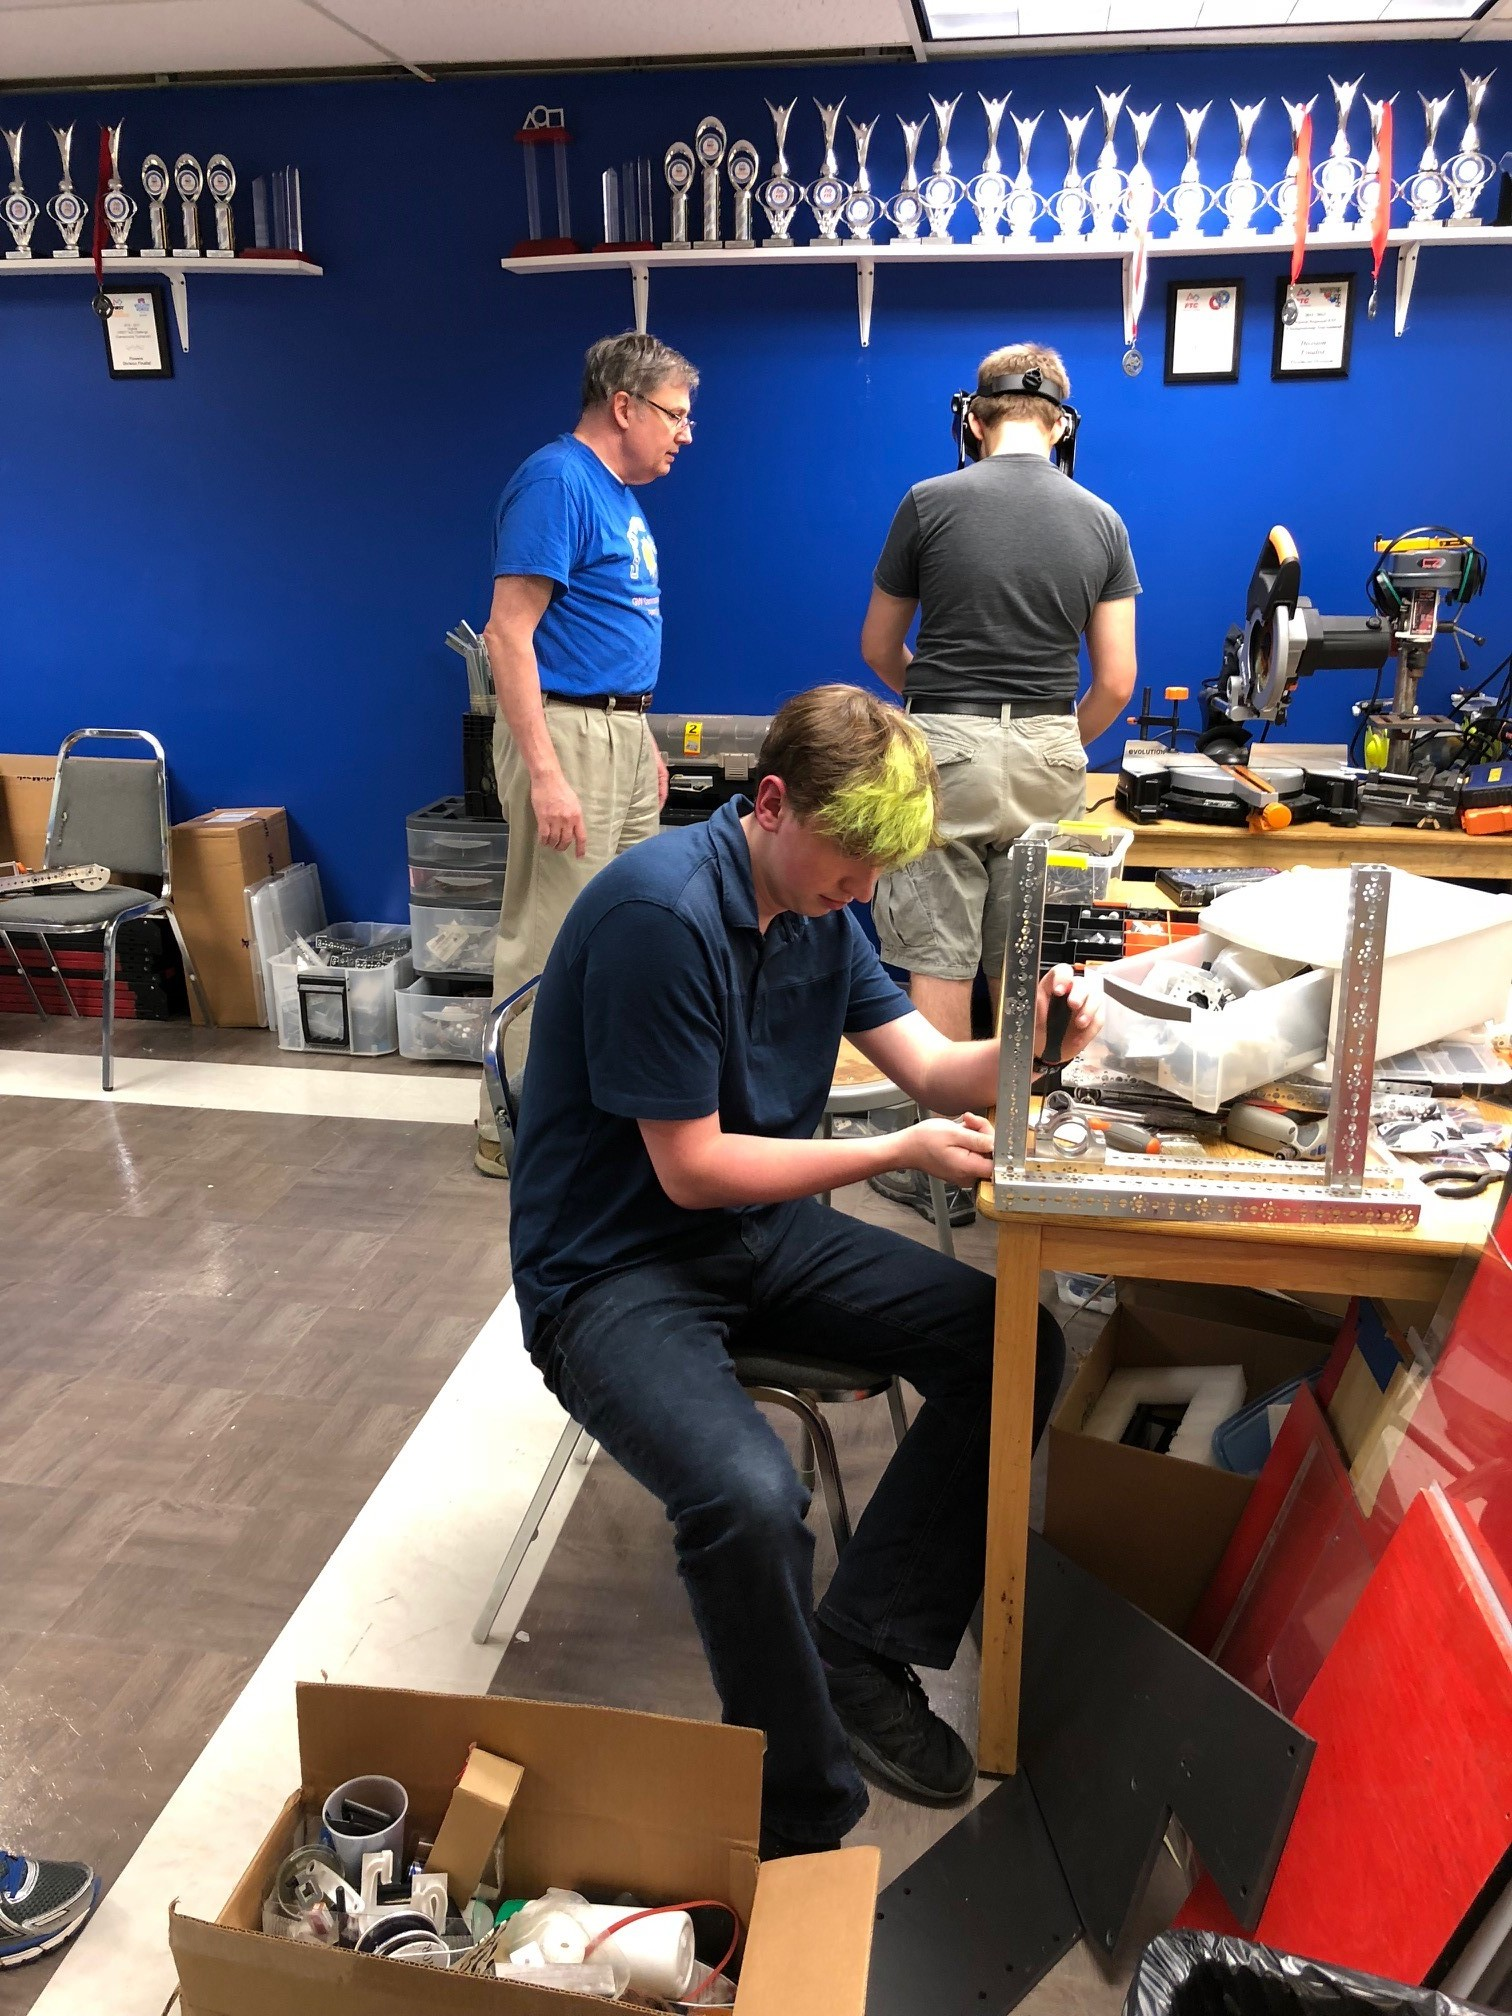 Michael E assembles while Mark uses the scroll saw.jpg